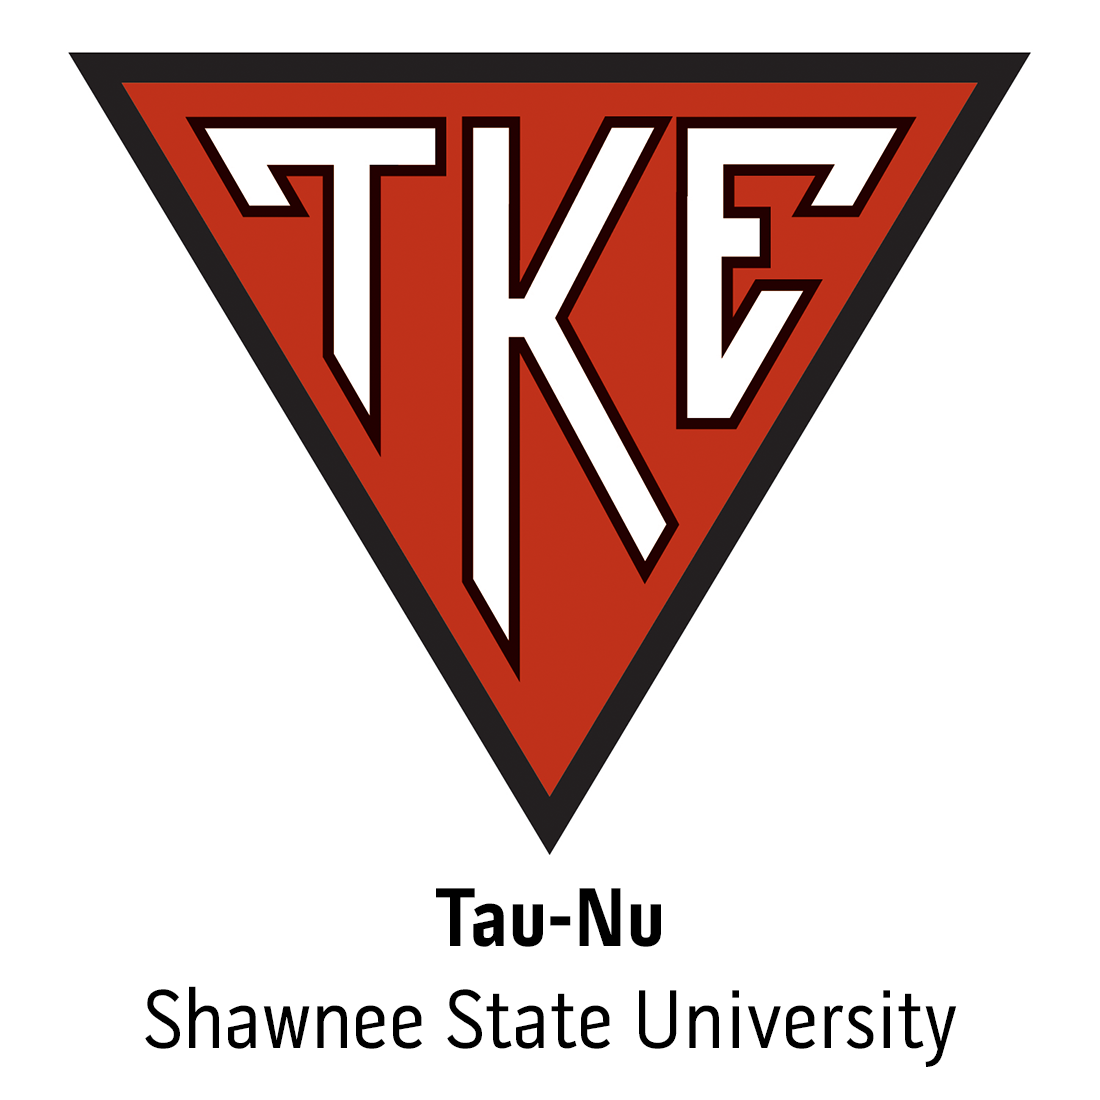 Tau-Nu Chapter at Shawnee State University